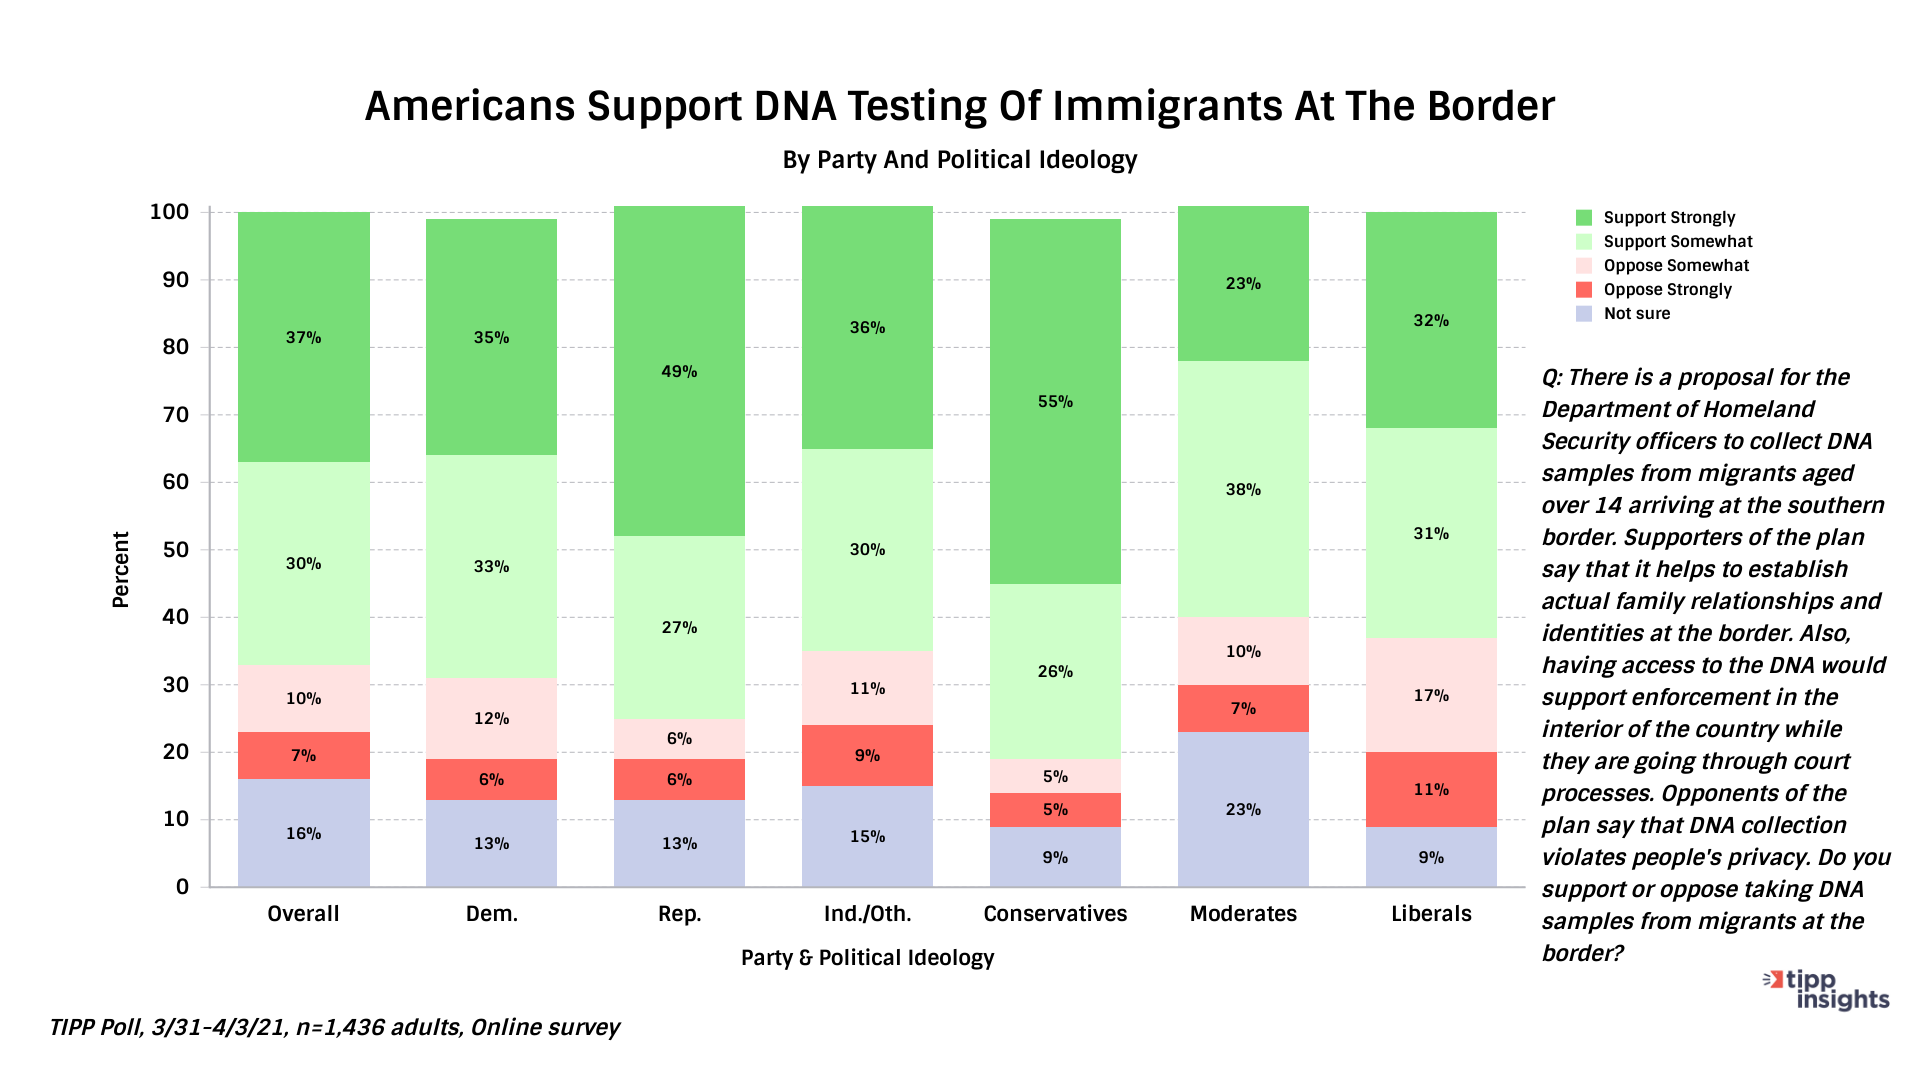 TIPP Americans Want DNA Testing Of Immigrants at Border - Chart